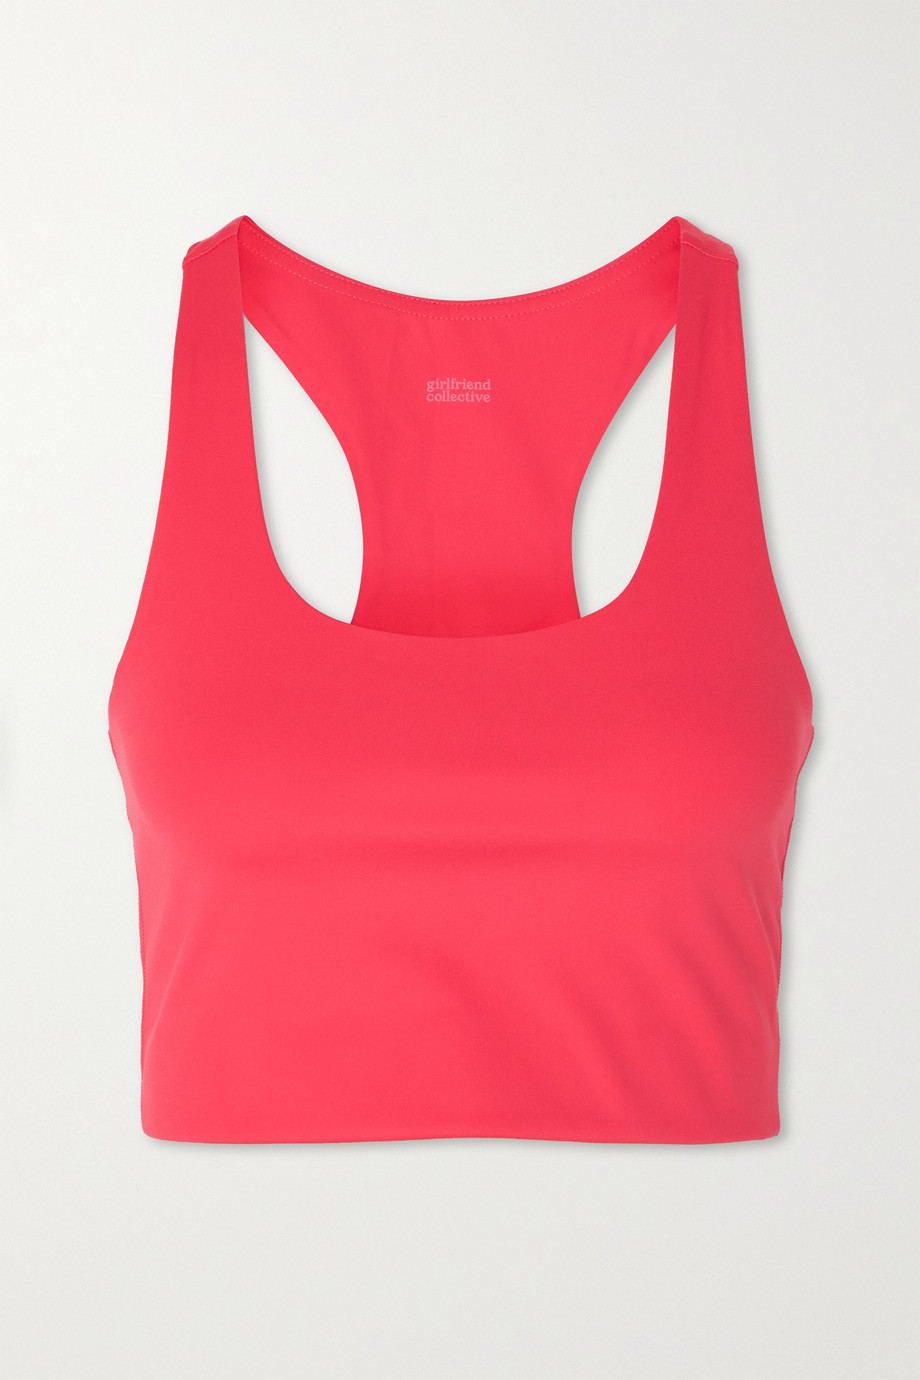 Girlfriend Collective + NET SUSTAIN Paloma recycled stretch sports bra